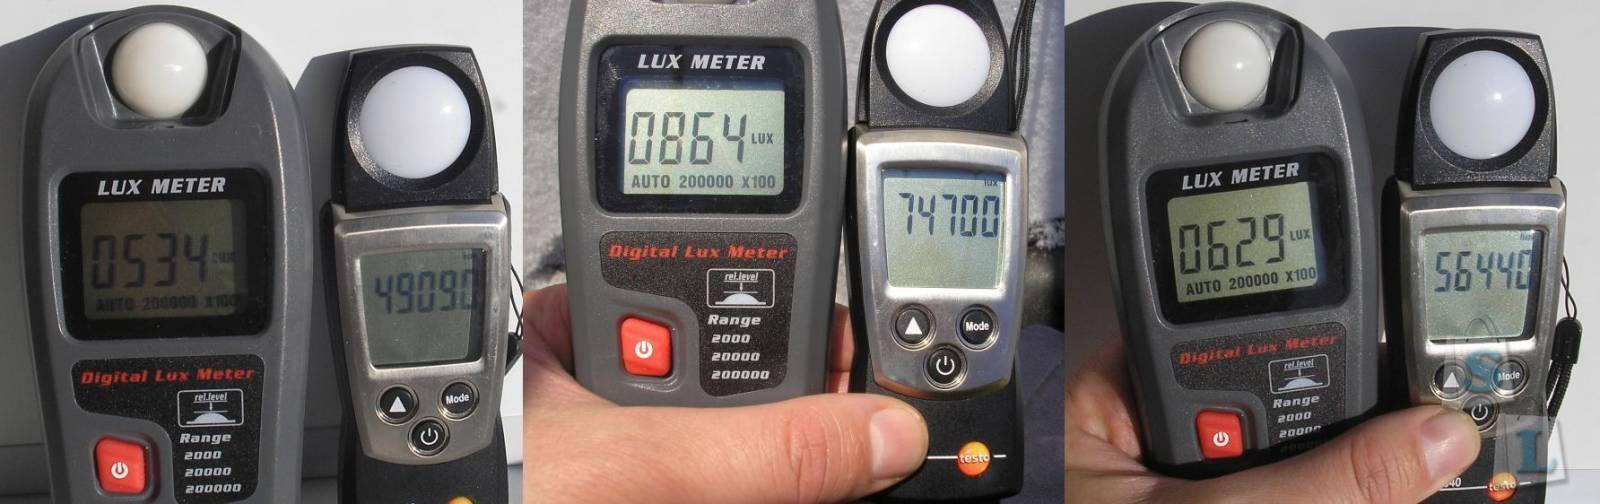 GearBest: Люксметр RZMT-30 (Digital Lux Meter)